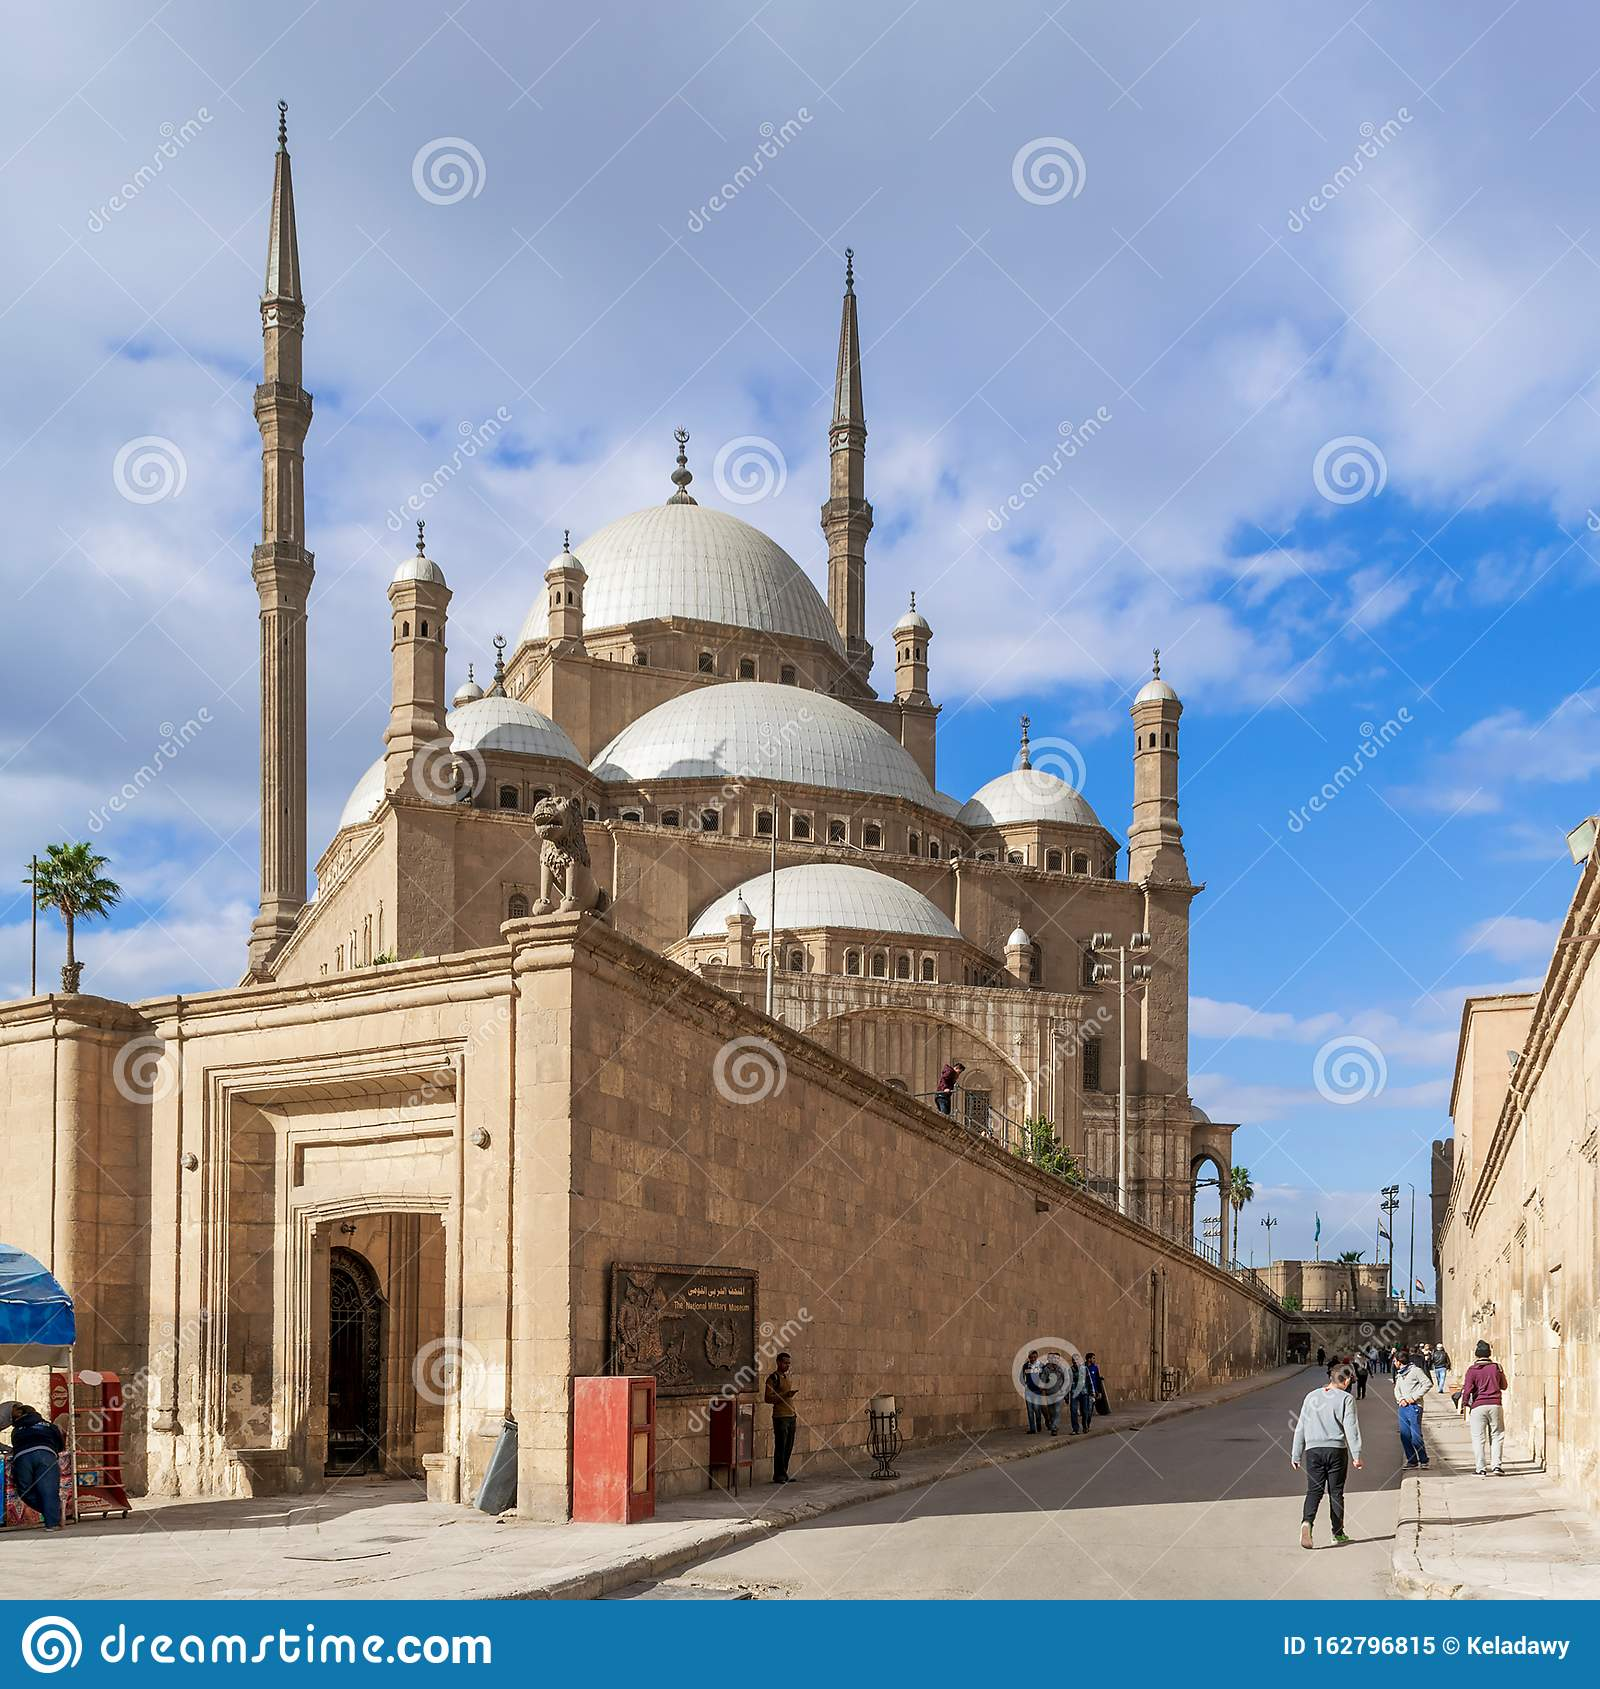 The great Mosque of Muhammad Ali Pasha - Alabaster Mosque - Citadel of Cairo, Egypt